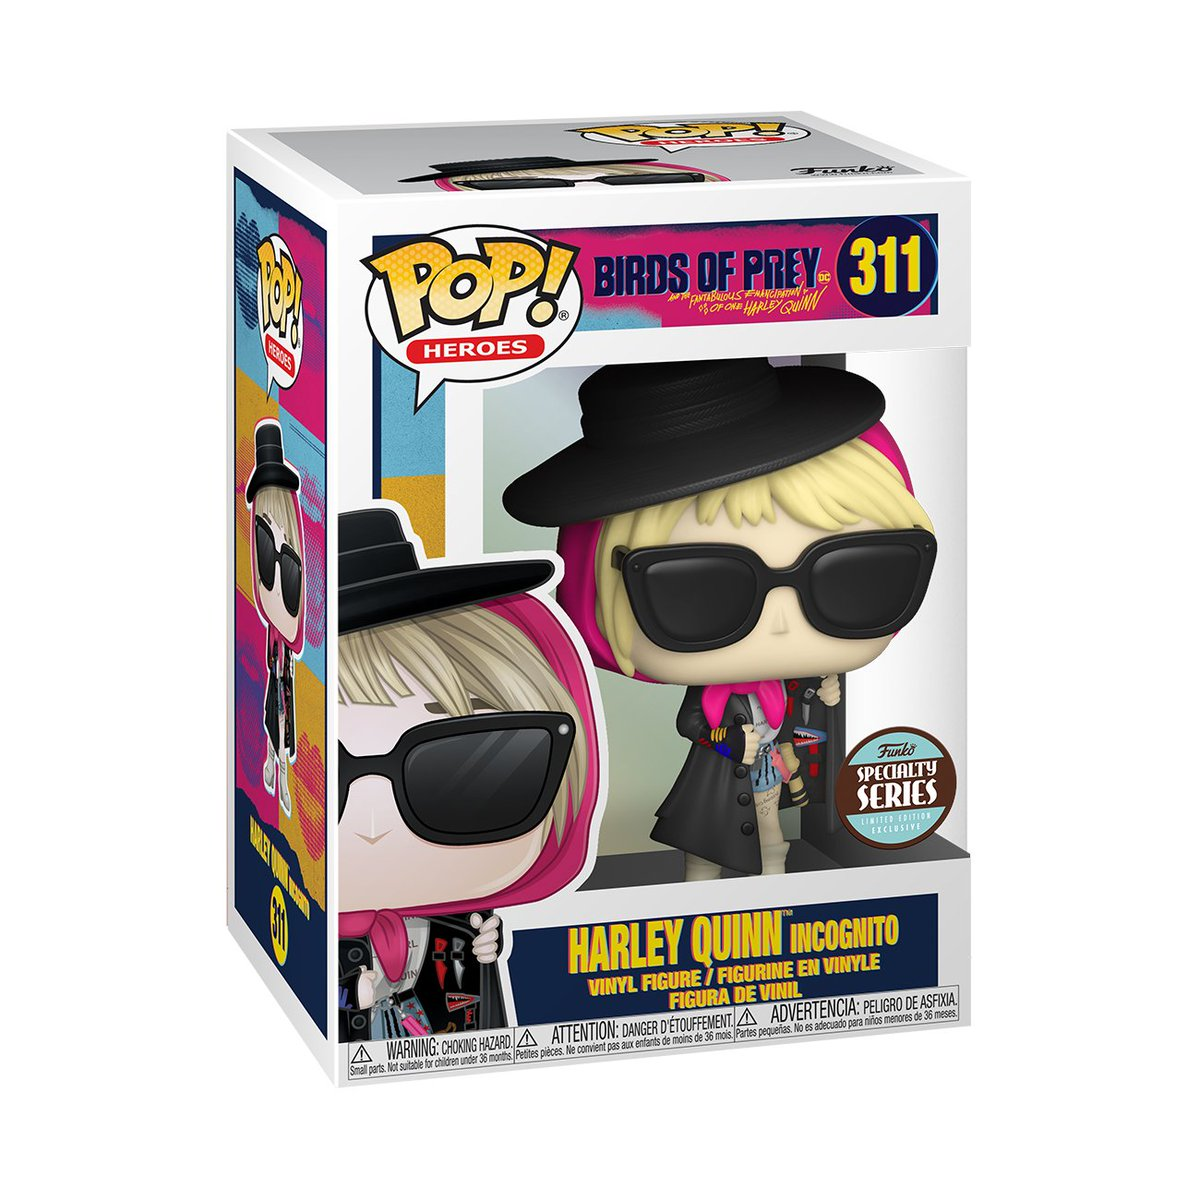 RT & follow @OriginalFunko for a chance to WIN a Specialty Series Harley Quinn (Incognito) Pop!  #Funko #FunkoPop #Giveaway #BirdsOfPrey #BOP #HarleyQuinn